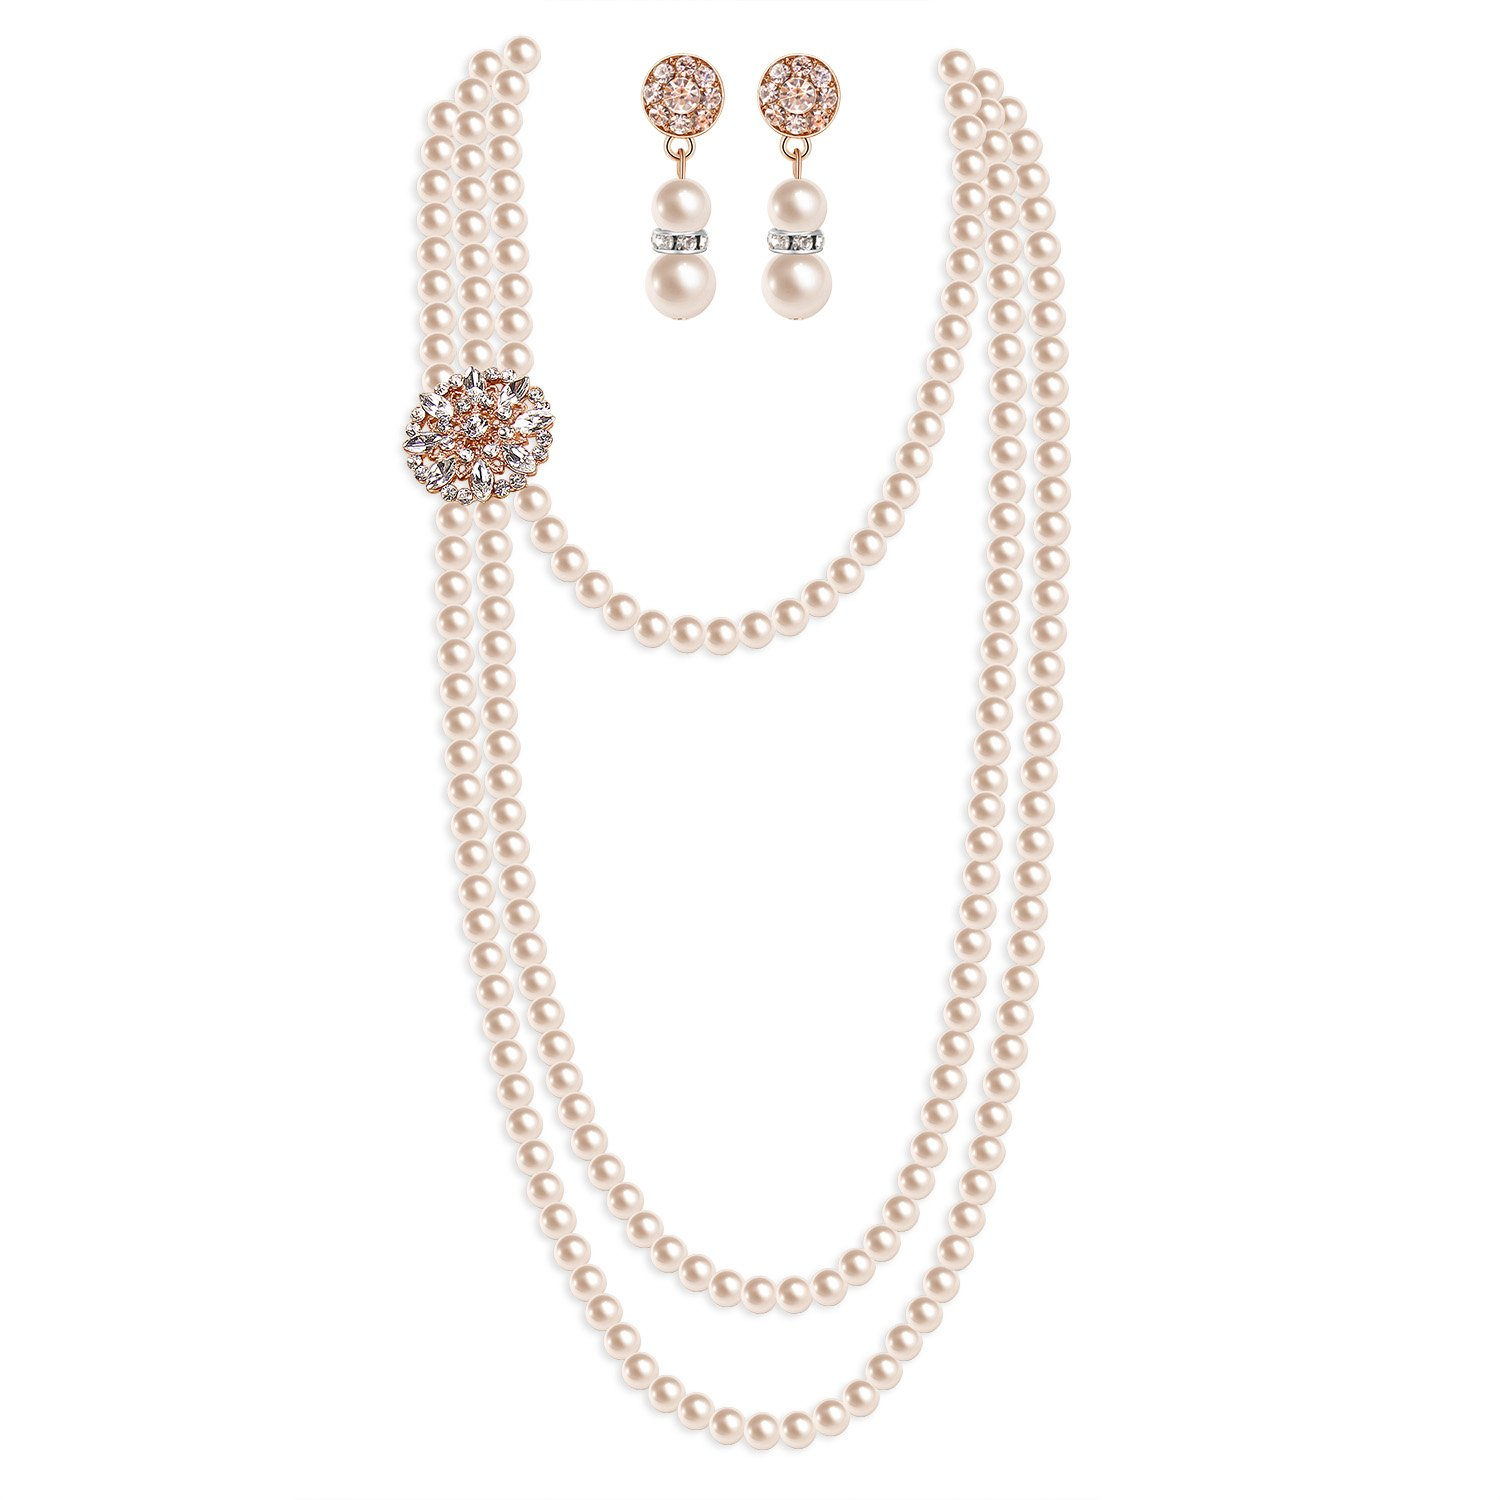 Zivyes 1920s Pearl Necklace Flapper Accessories Fashion Faux Pearl Earrings Gatsby Wedding Jewelry Set